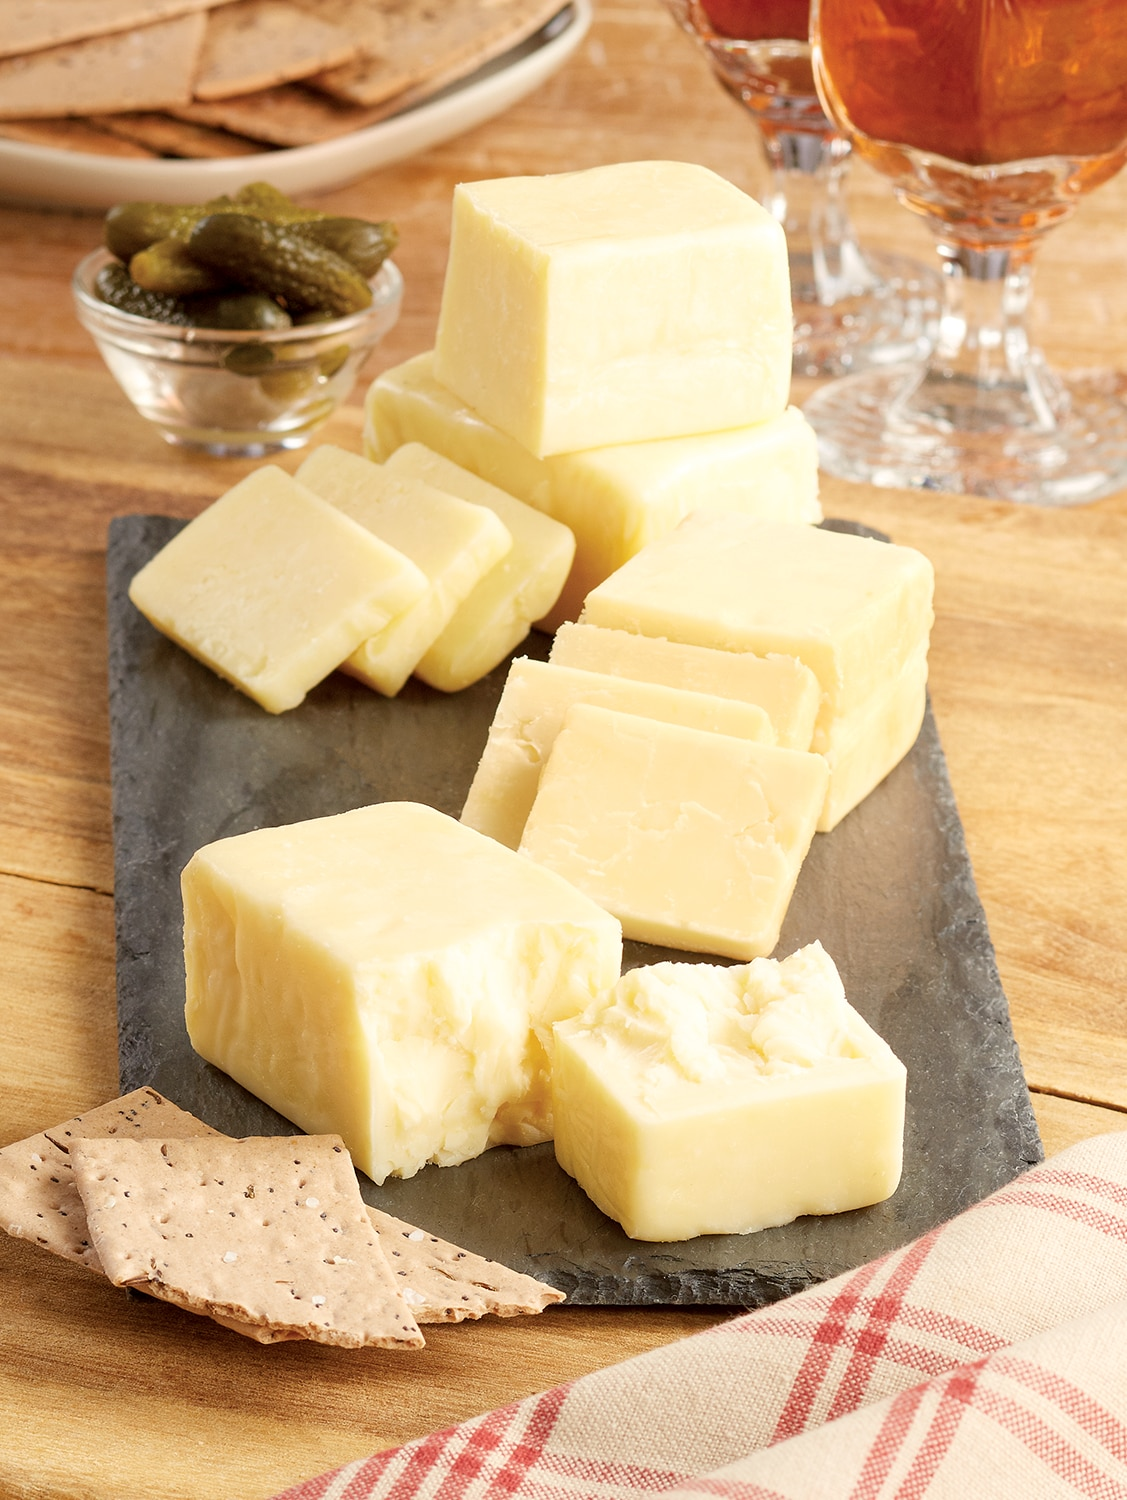 Vermont Cheddar Cheese Sampler, Four 4 oz. Blocks